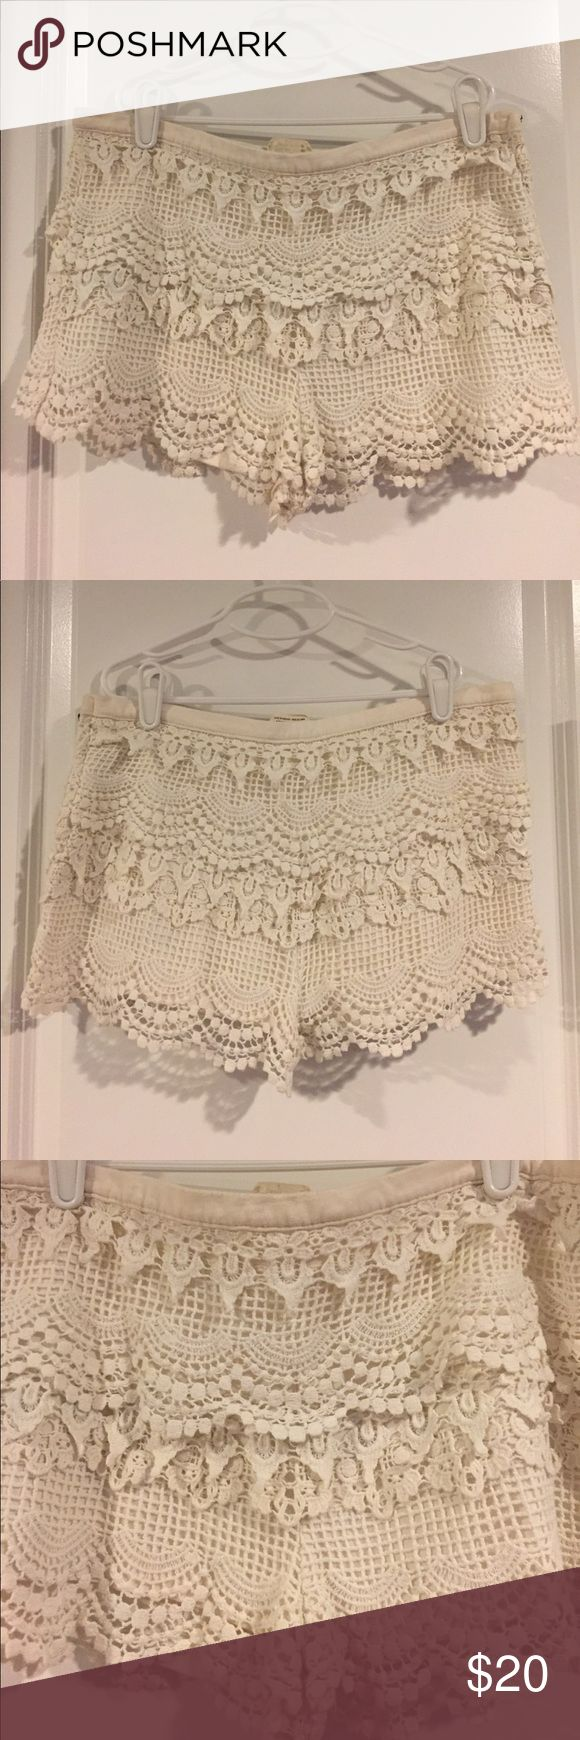 Urban Outfitters Crochet Shorts - Size 4 Cream colored crochet lace shorts from Urban Outfitters. Side zip. Size 4. Urban Outfitters Shorts